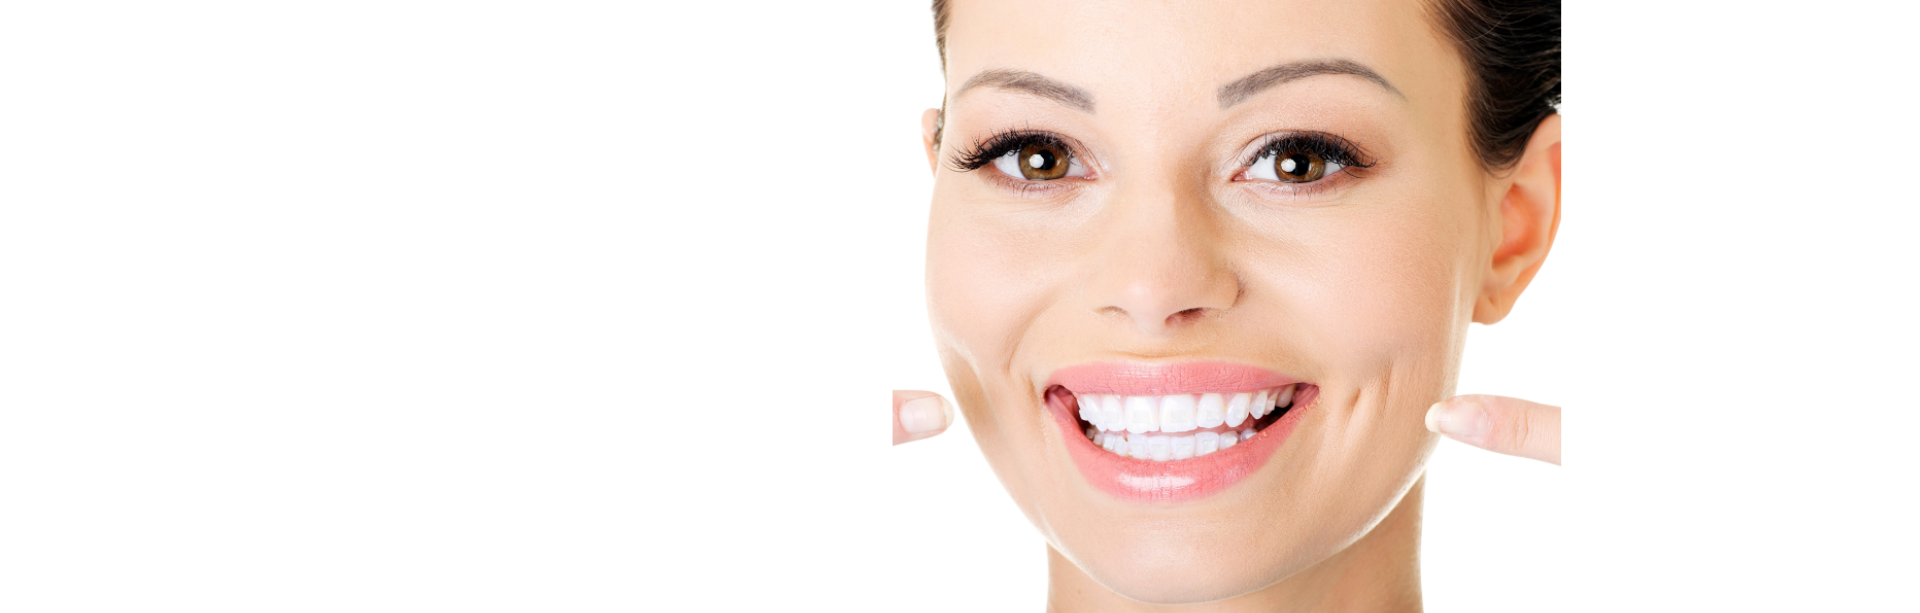 Smart-Braces-Invisible-Tooth-Attachments